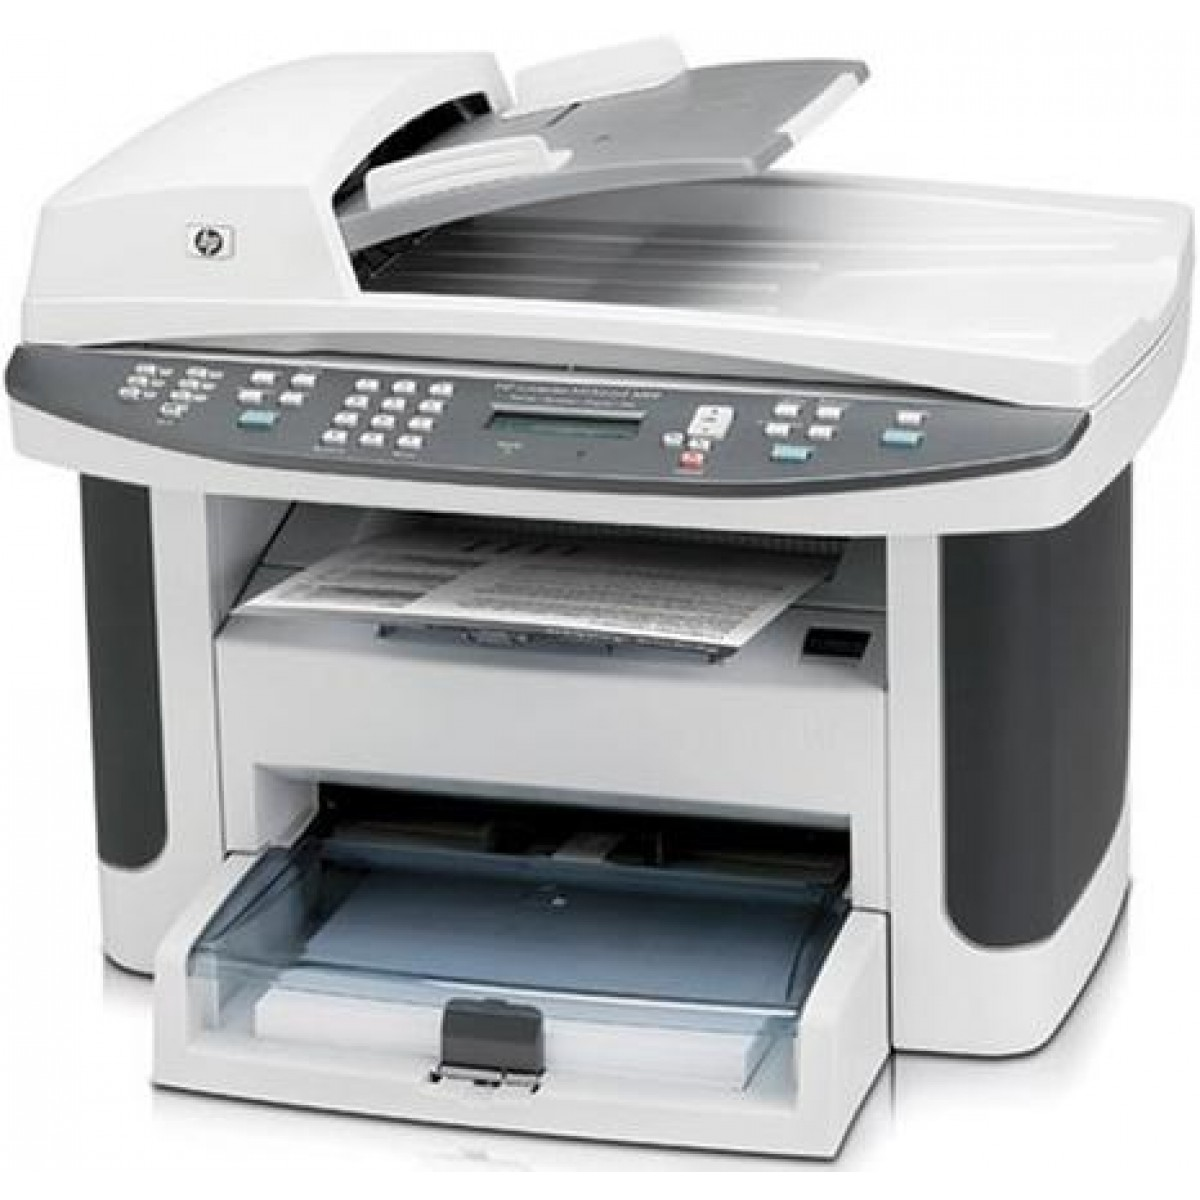 <a href='details-23.html' class='btn btn-warning'><i class='fa fa-cog'></i> d&eacute;tails </a> <br>  						- Marque : 						HP						<br>  						- modele : 						laserjet 1522						<br>